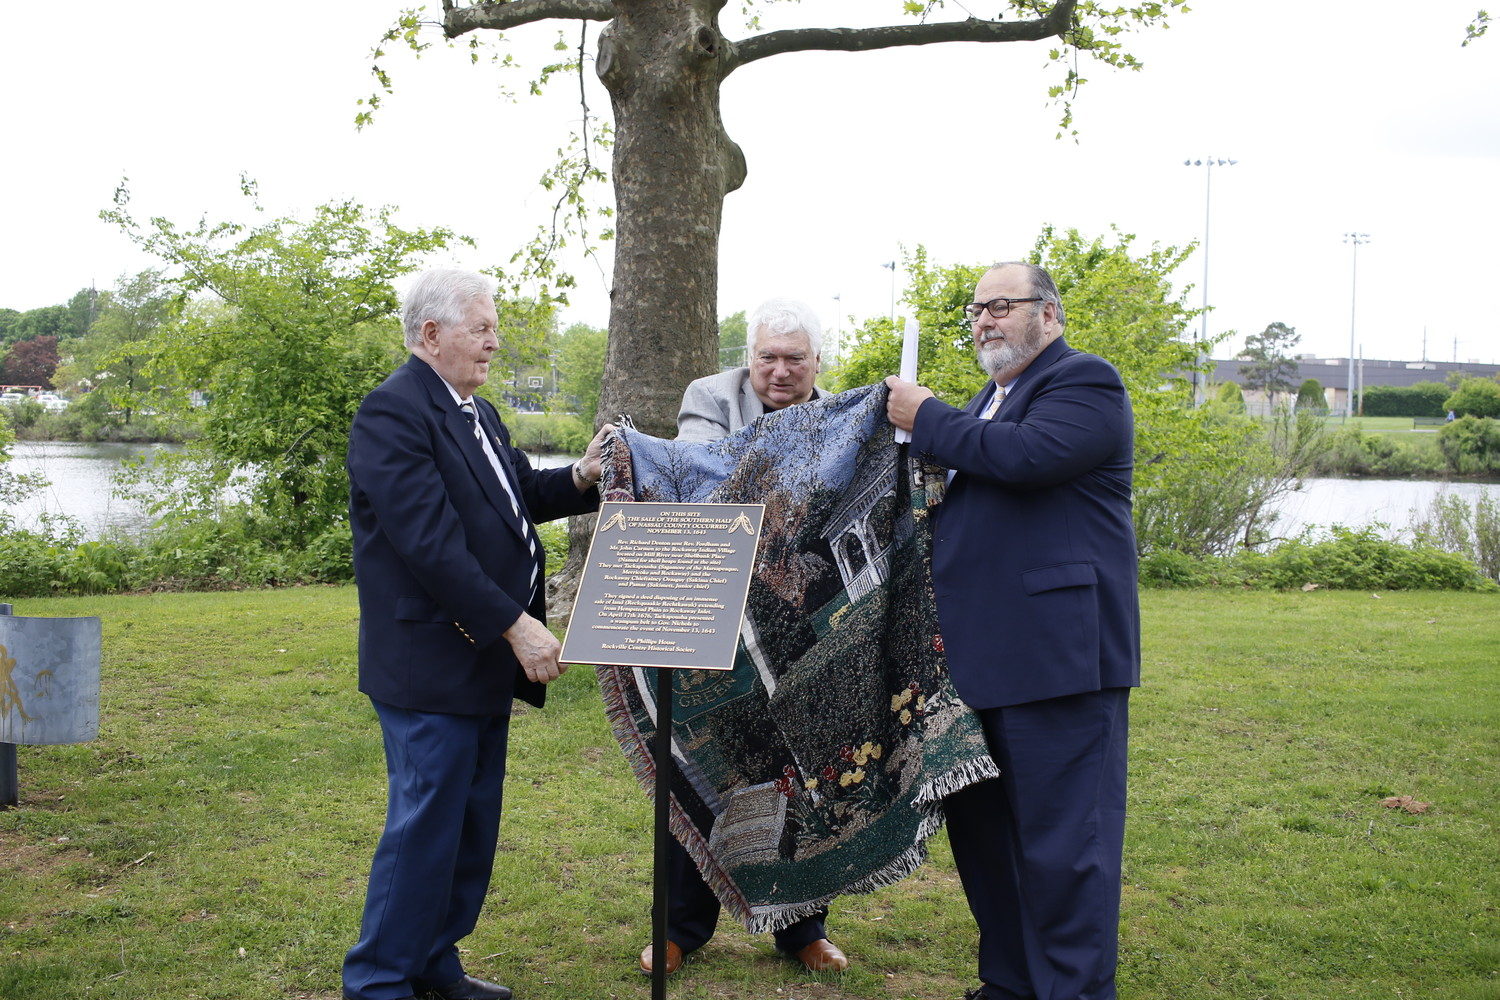 Frank Seipp, president of the Phillips House Museum, left, Dr. Michael Orzano, trustee for the Museum, and Mayor Francis X. Murray unveiled a plaque on May 20 that commemorates the founding of the Town of Hempstead.